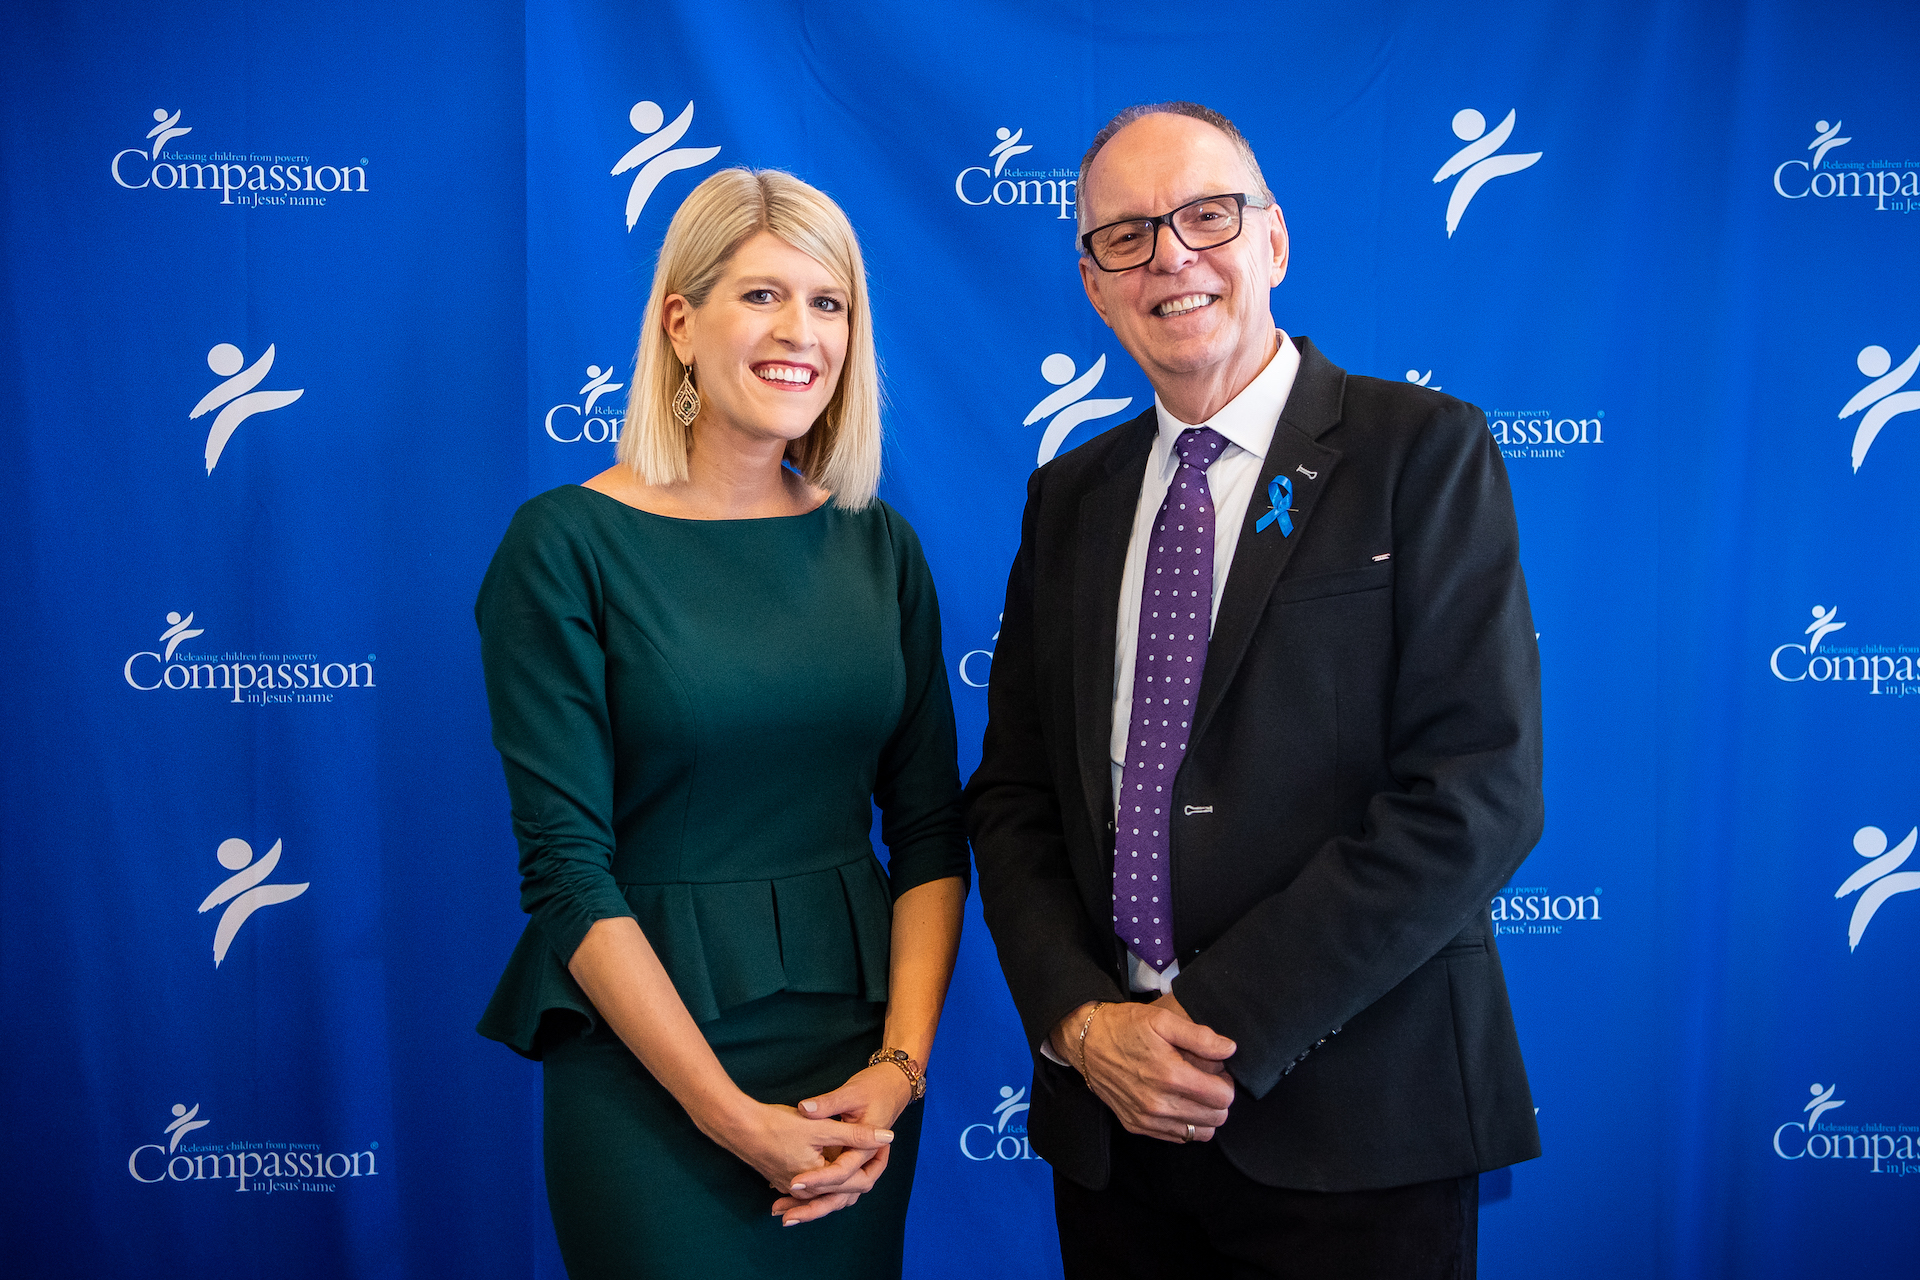 Allison and Barry pose in front of a blue Compassion backdrop.